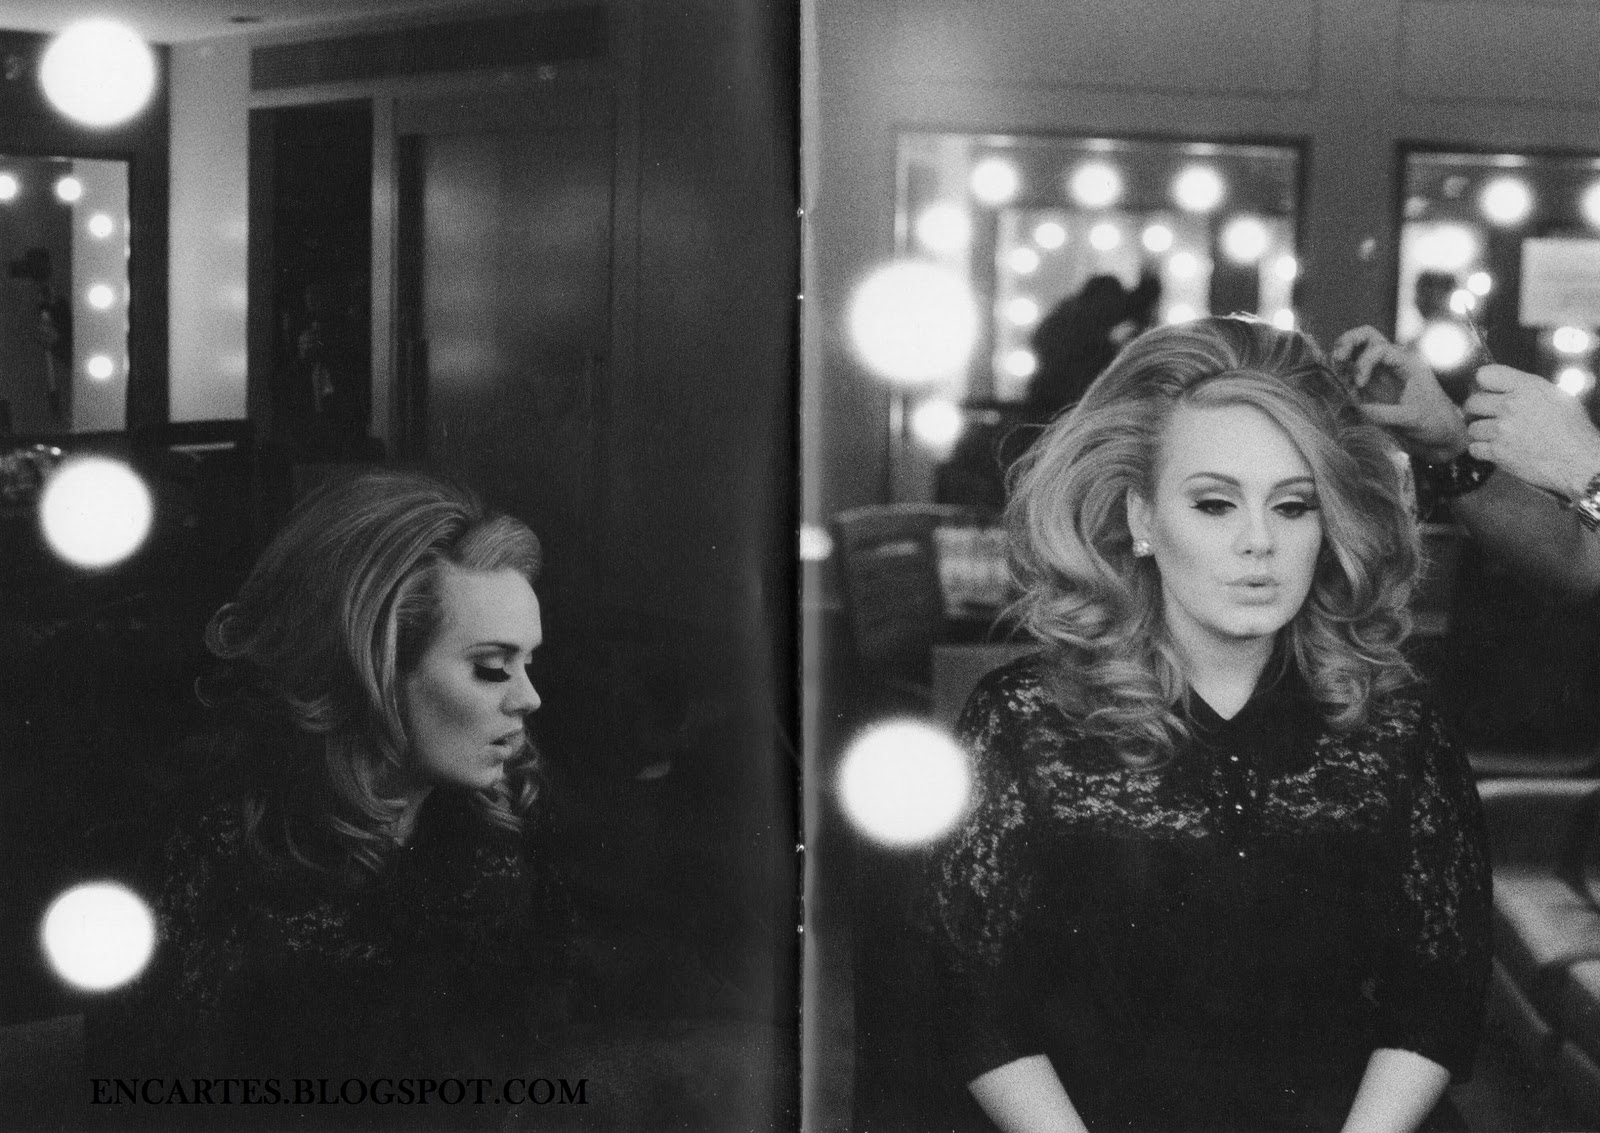 http://4.bp.blogspot.com/-wD30Q4mQphE/Tt563dUvFdI/AAAAAAAAJaA/XdbdoZMMNEU/s1600/Adele+-+Live+At+The+Royal+Albert+Hall+-+Booklet+%25283-8%2529.jpg